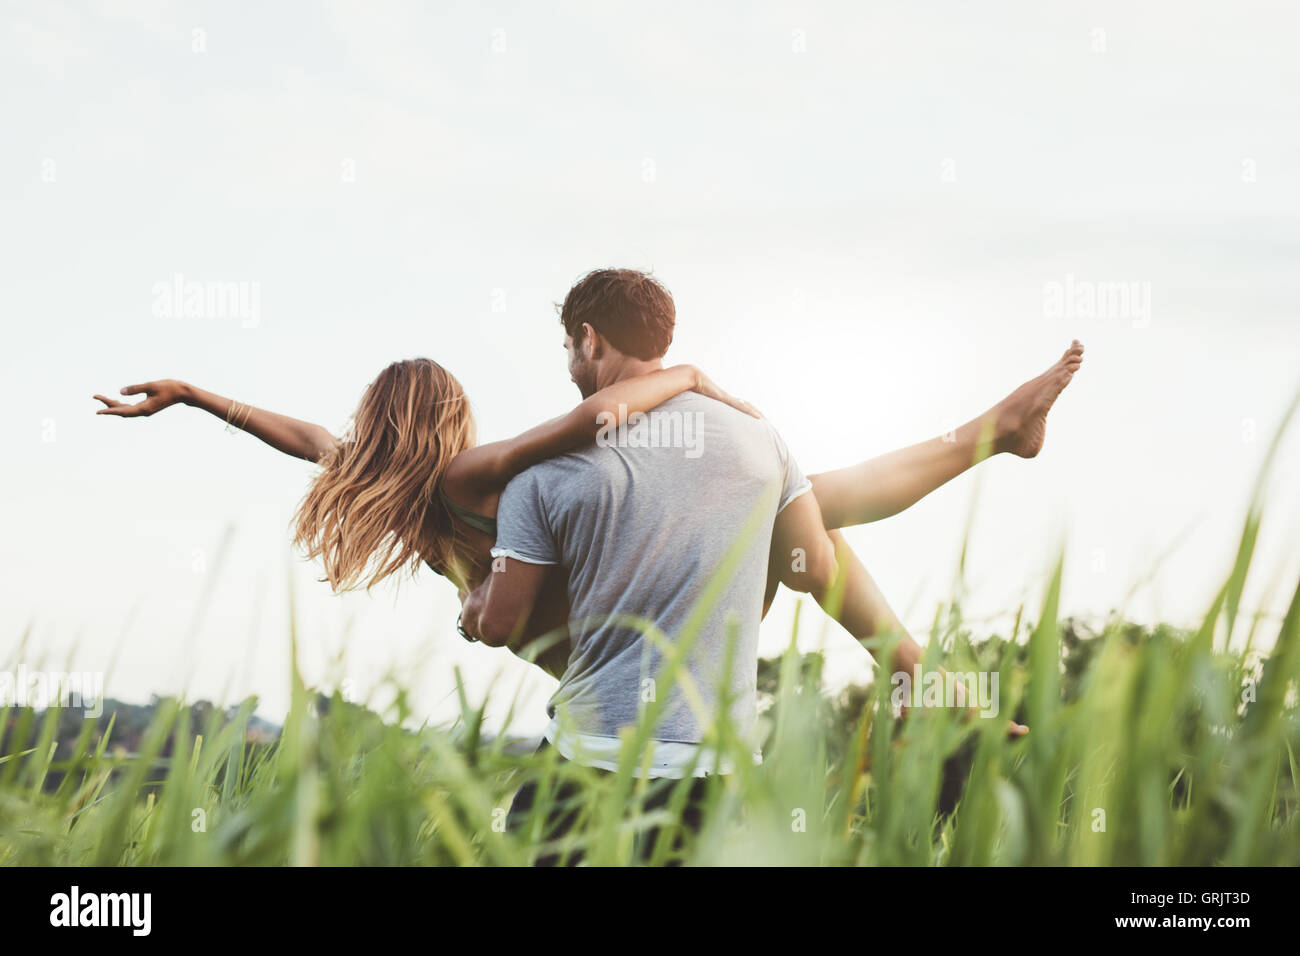 Rear view shot of man carrying woman in rural field. Couple enjoying outdoors on grass field. - Stock Image